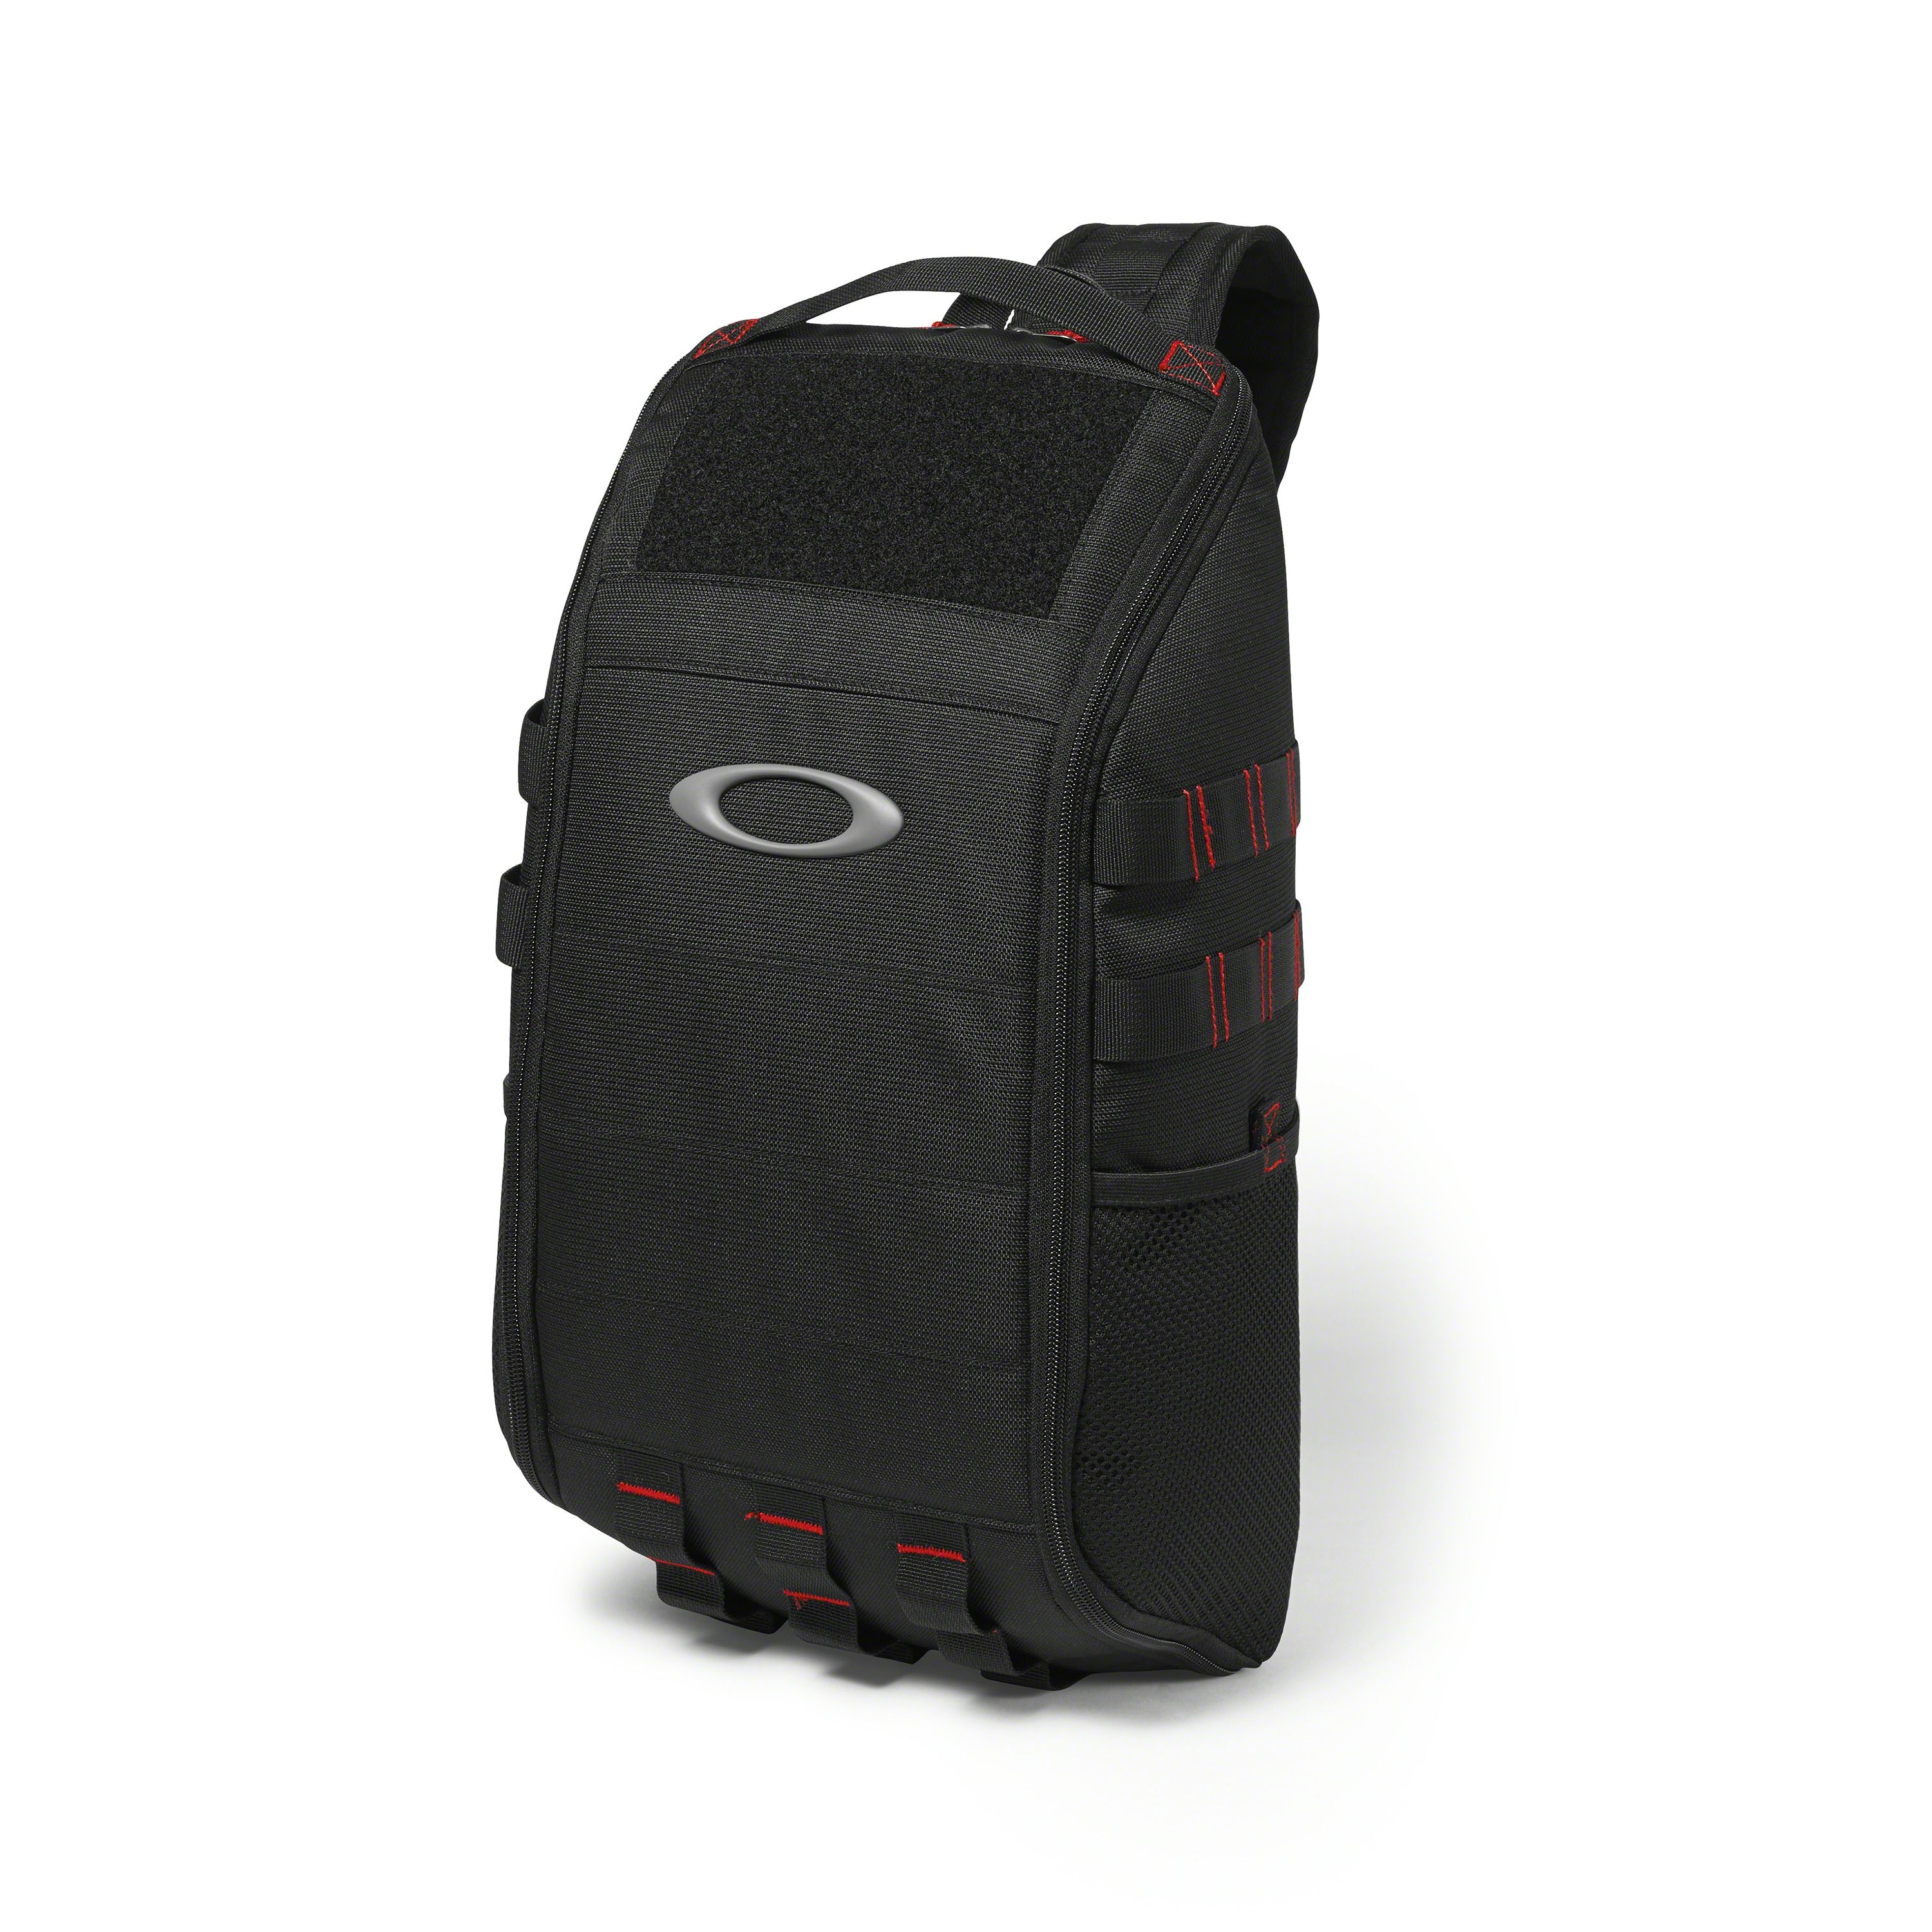 53a5e7acd48 Shop Oakley Extractor Sling Backpack in BLACK at the official Oakley online  store.